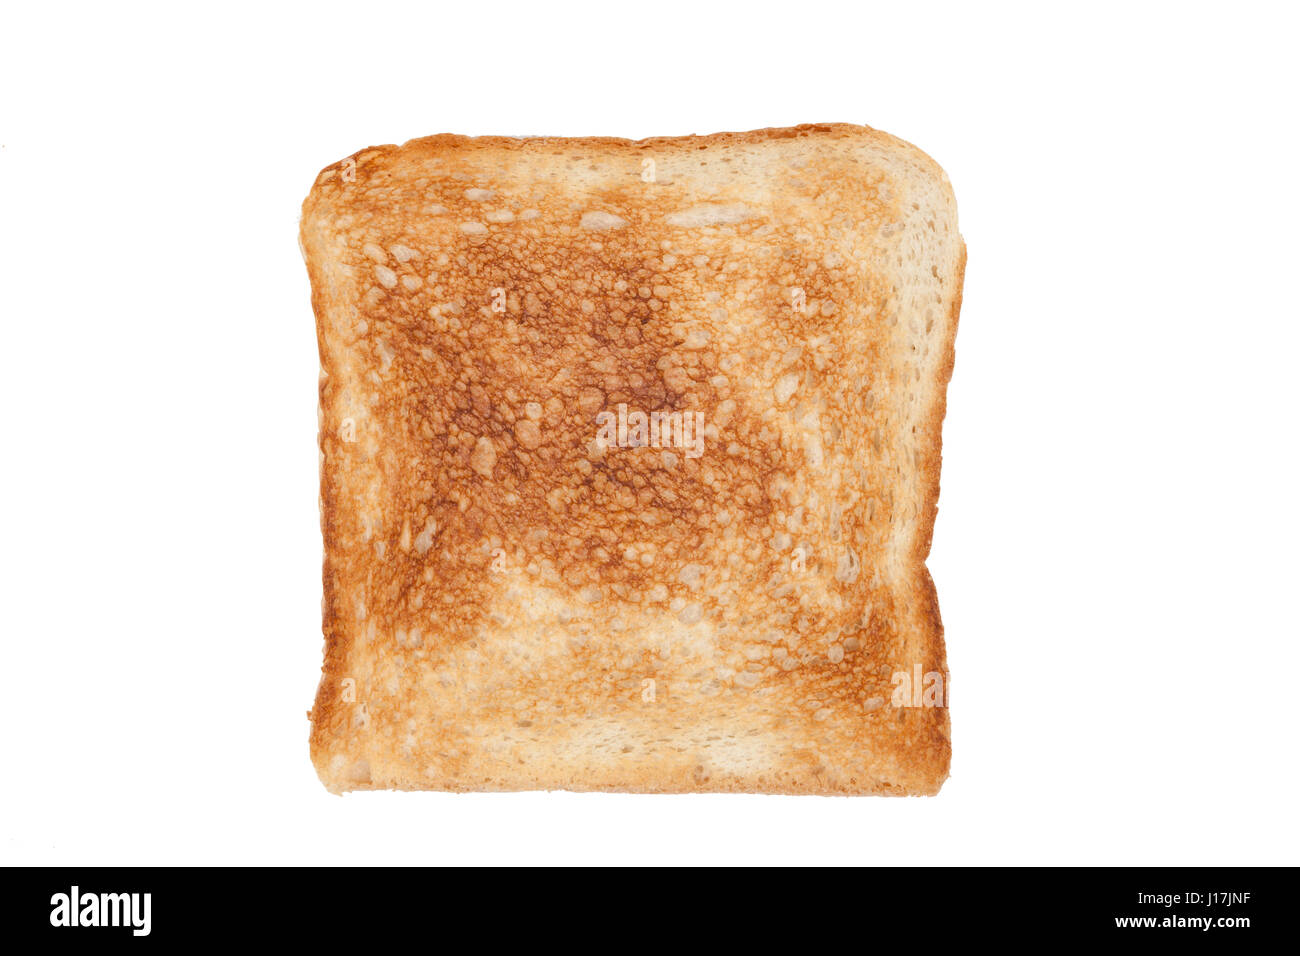 Slice of tast bread - Stock Image